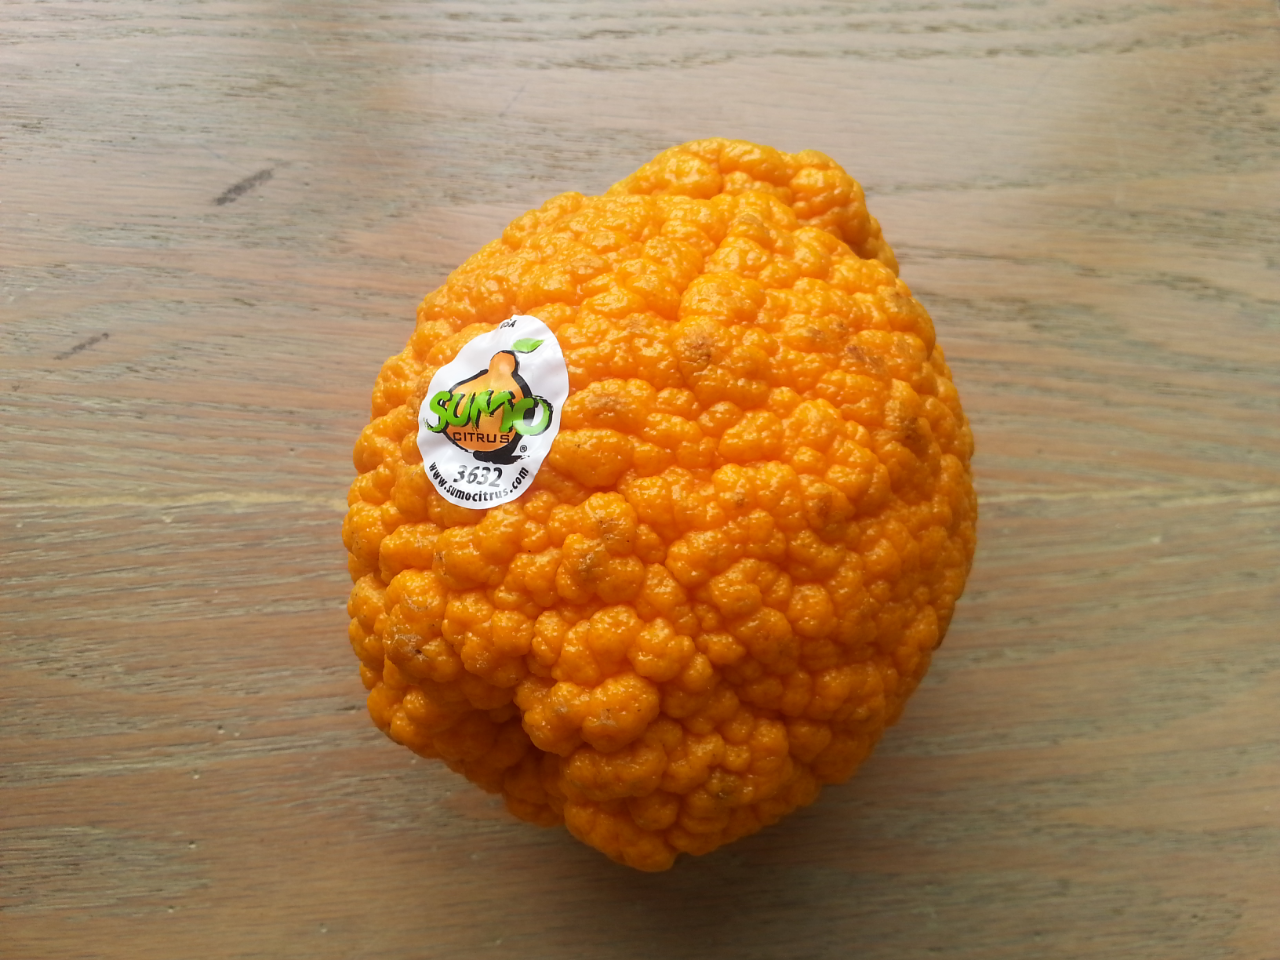 Weird Orange Fruits 5